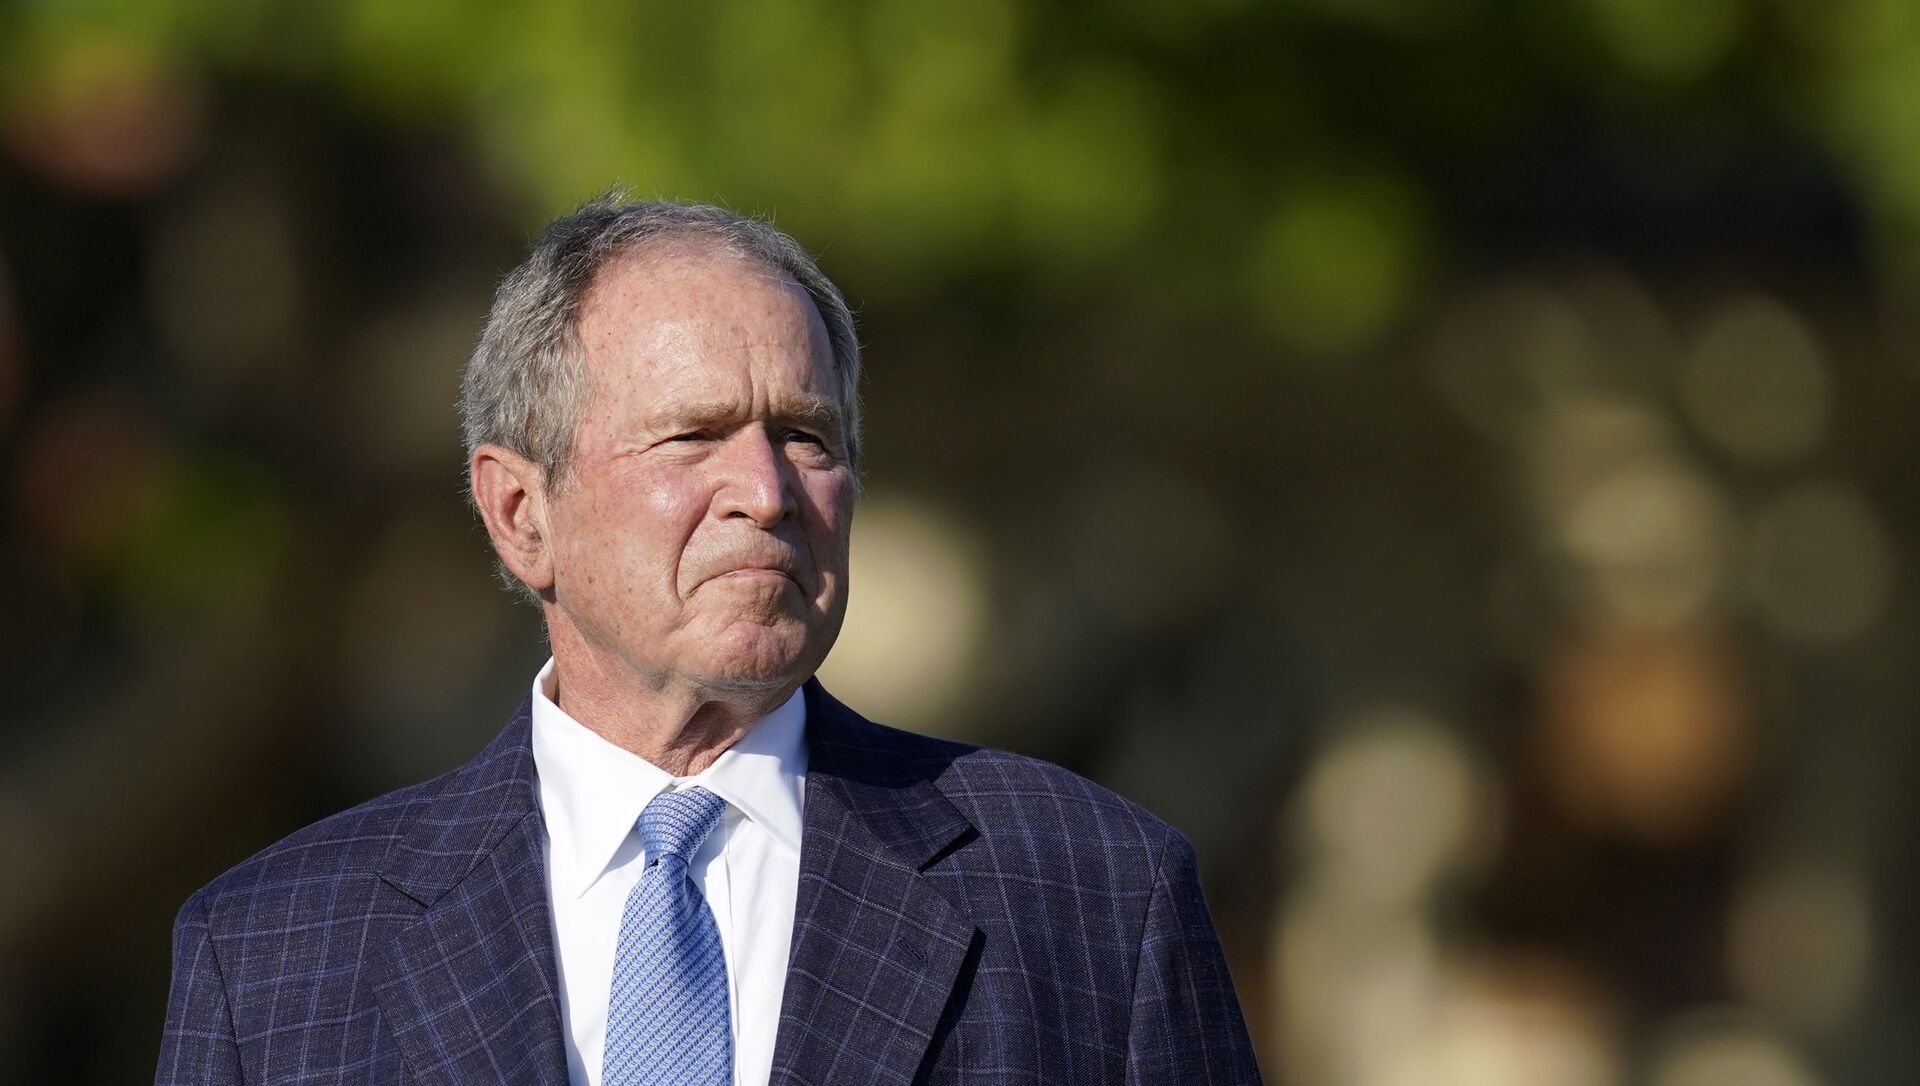 Former President George W. Bush listens to speakers during the opening ceremony of the Walker Cup golf tournament, which starts tomorrow, at Seminole Golf Club in Juno Beach, Fla., Friday, May 7, 2021. The tournament was founded by George Herbert Walker, the United States Golf Association president in 1920, who was the great-grandfather of Bush. - Sputnik International, 1920, 18.08.2021